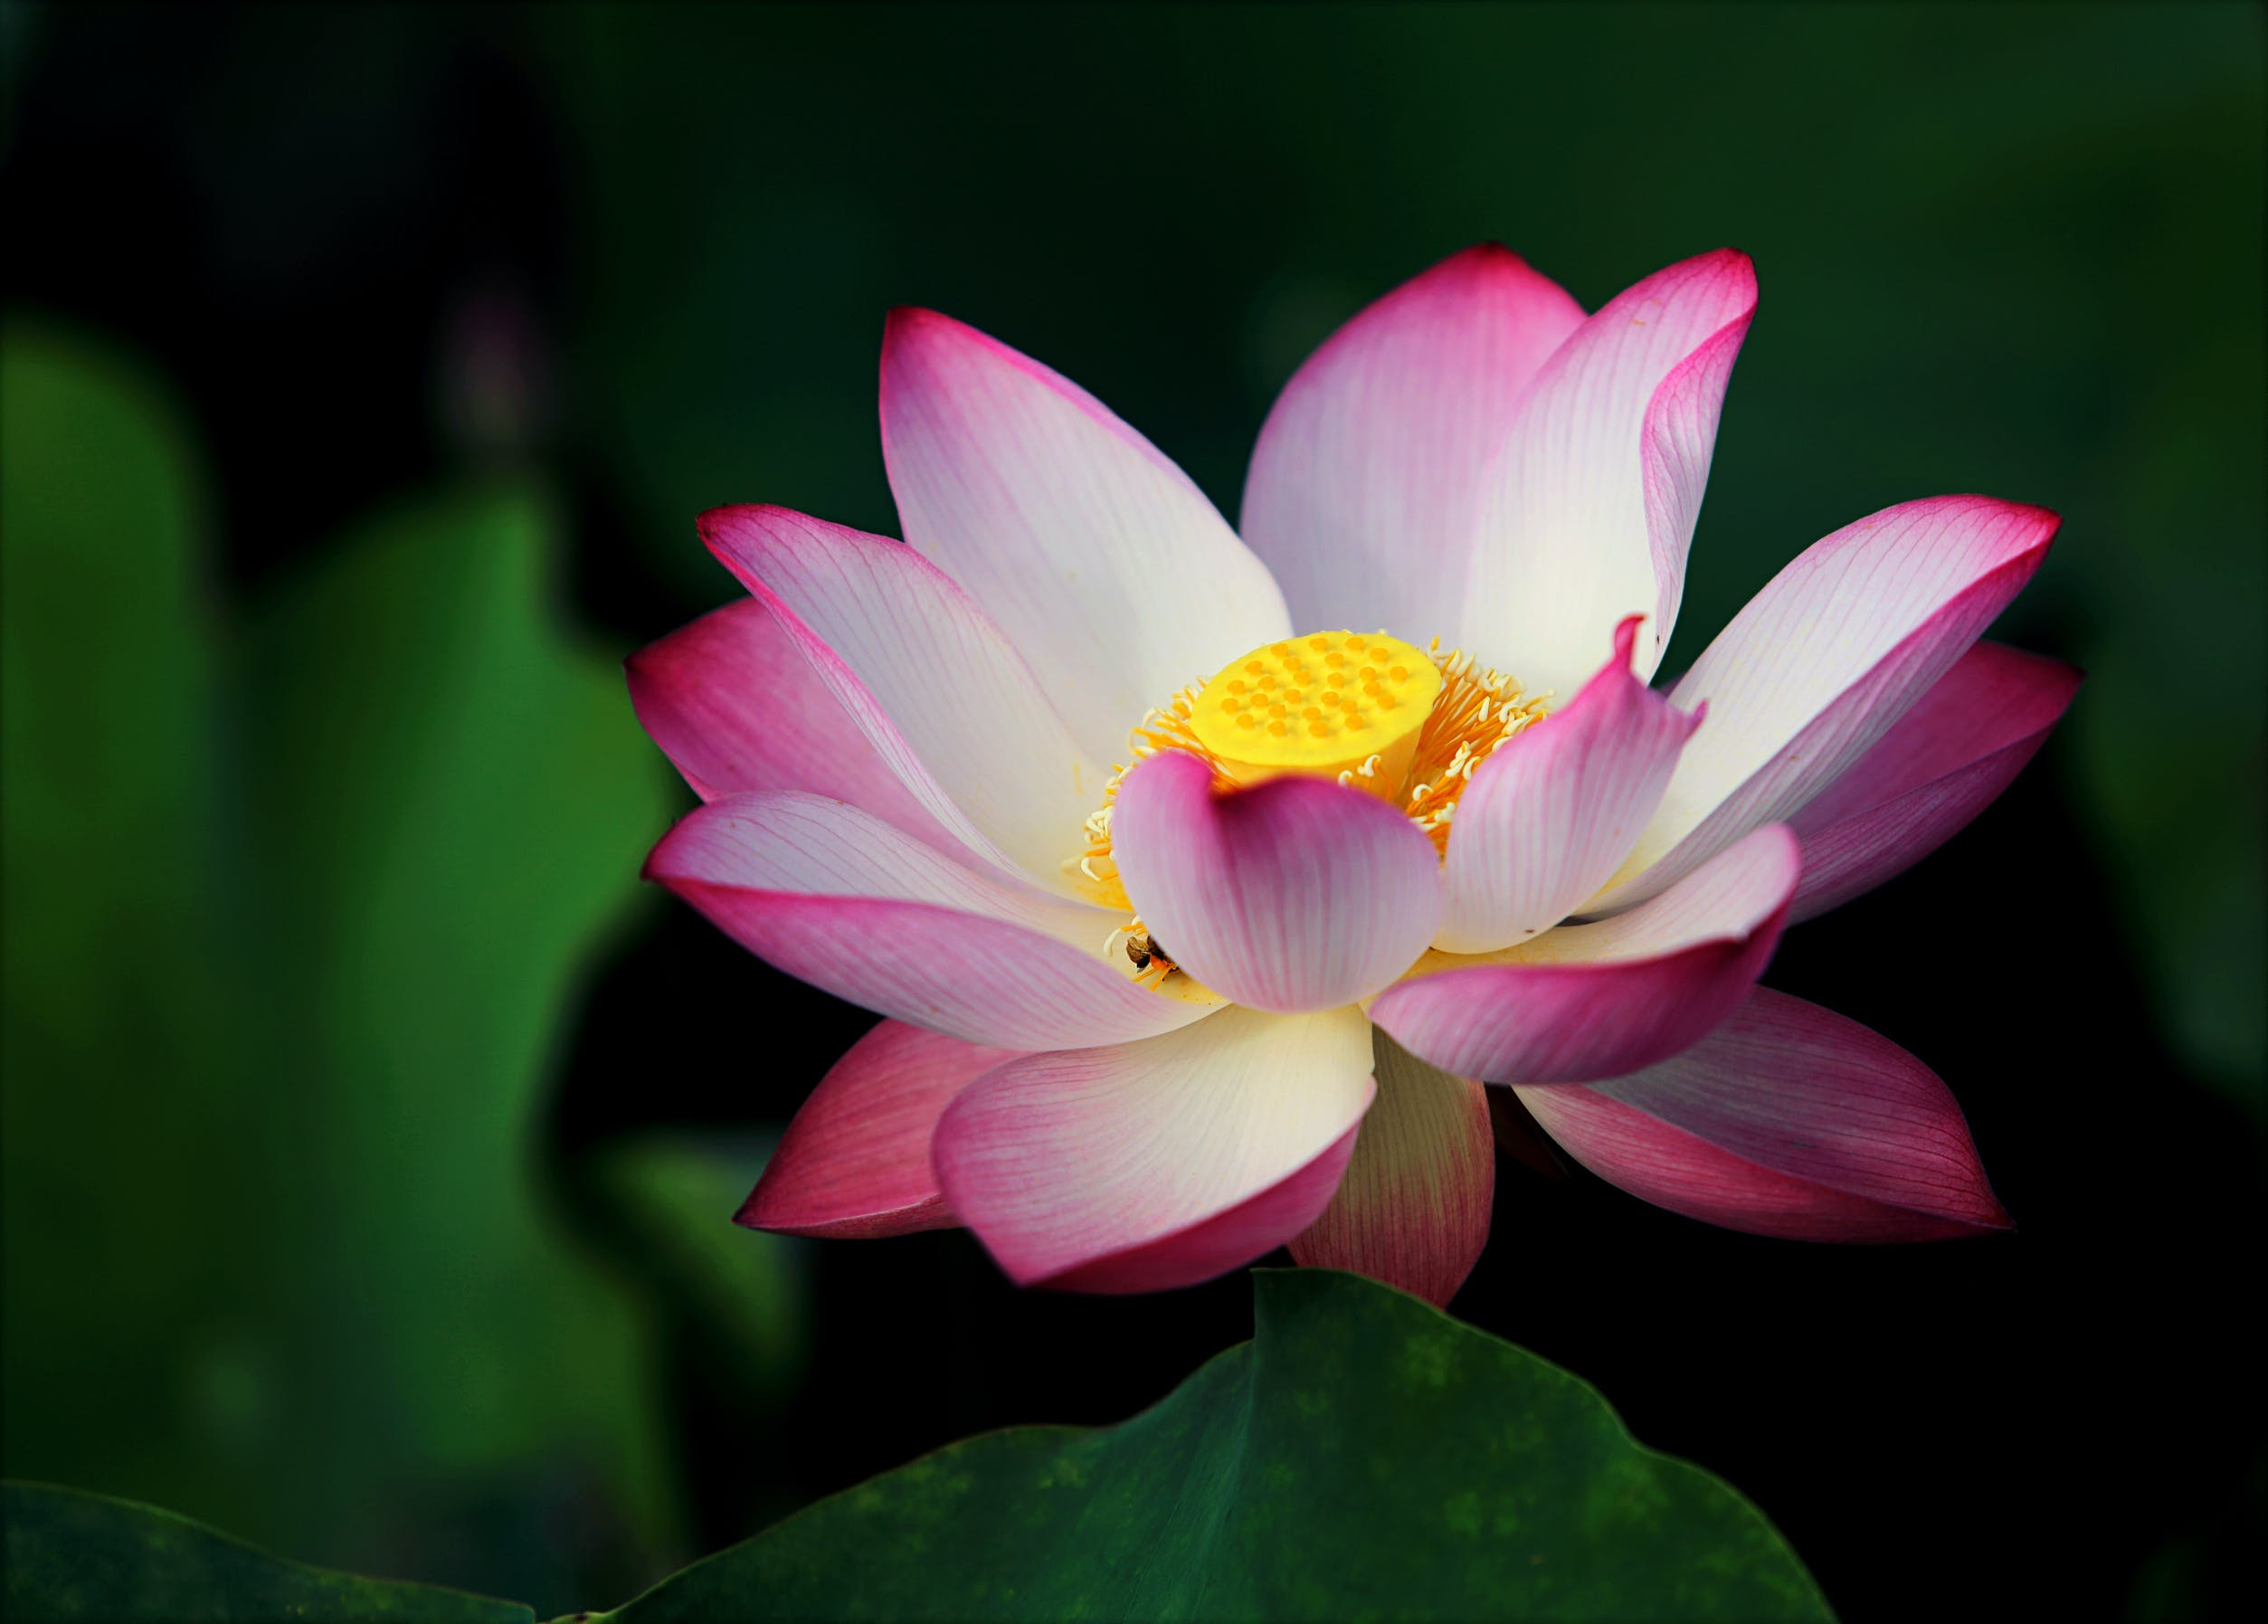 Focus Photo Pink and White Lotus Flower